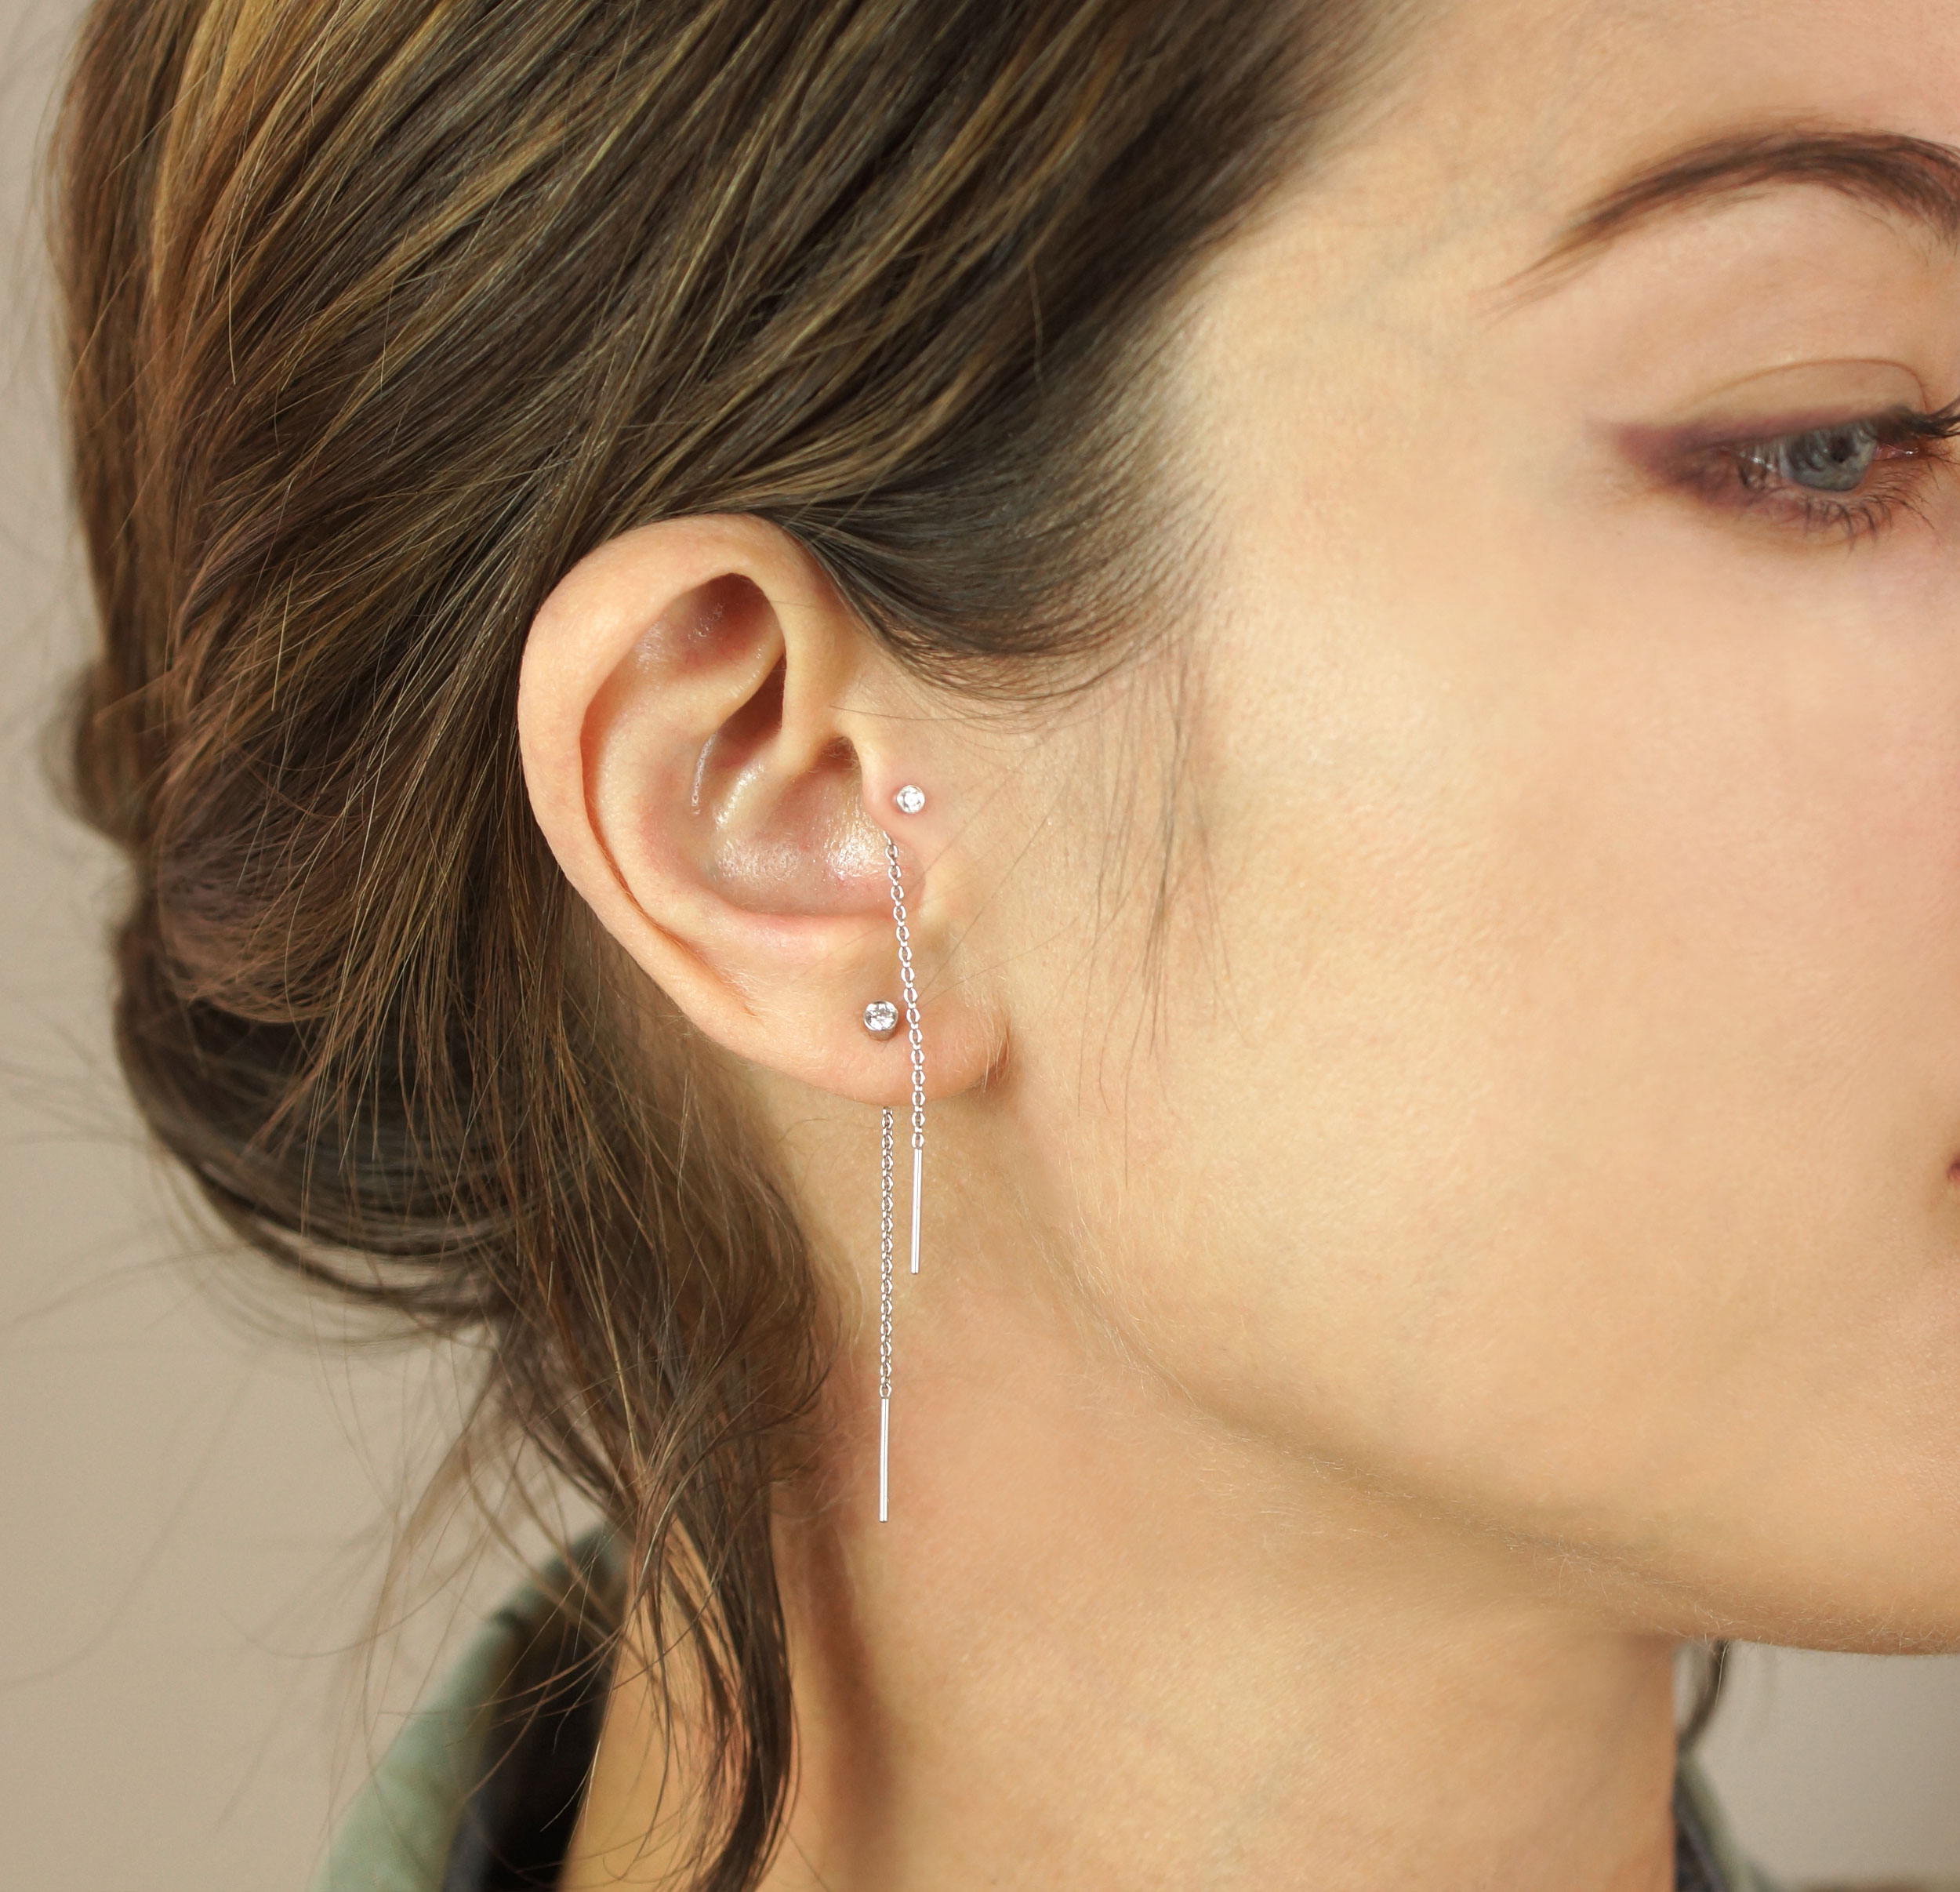 824da1891 ... who sells tragus earrings made from precious metals and stones such as  diamonds, gold, rubies and emeralds. Wear a combination that seamlessly  syncs ...